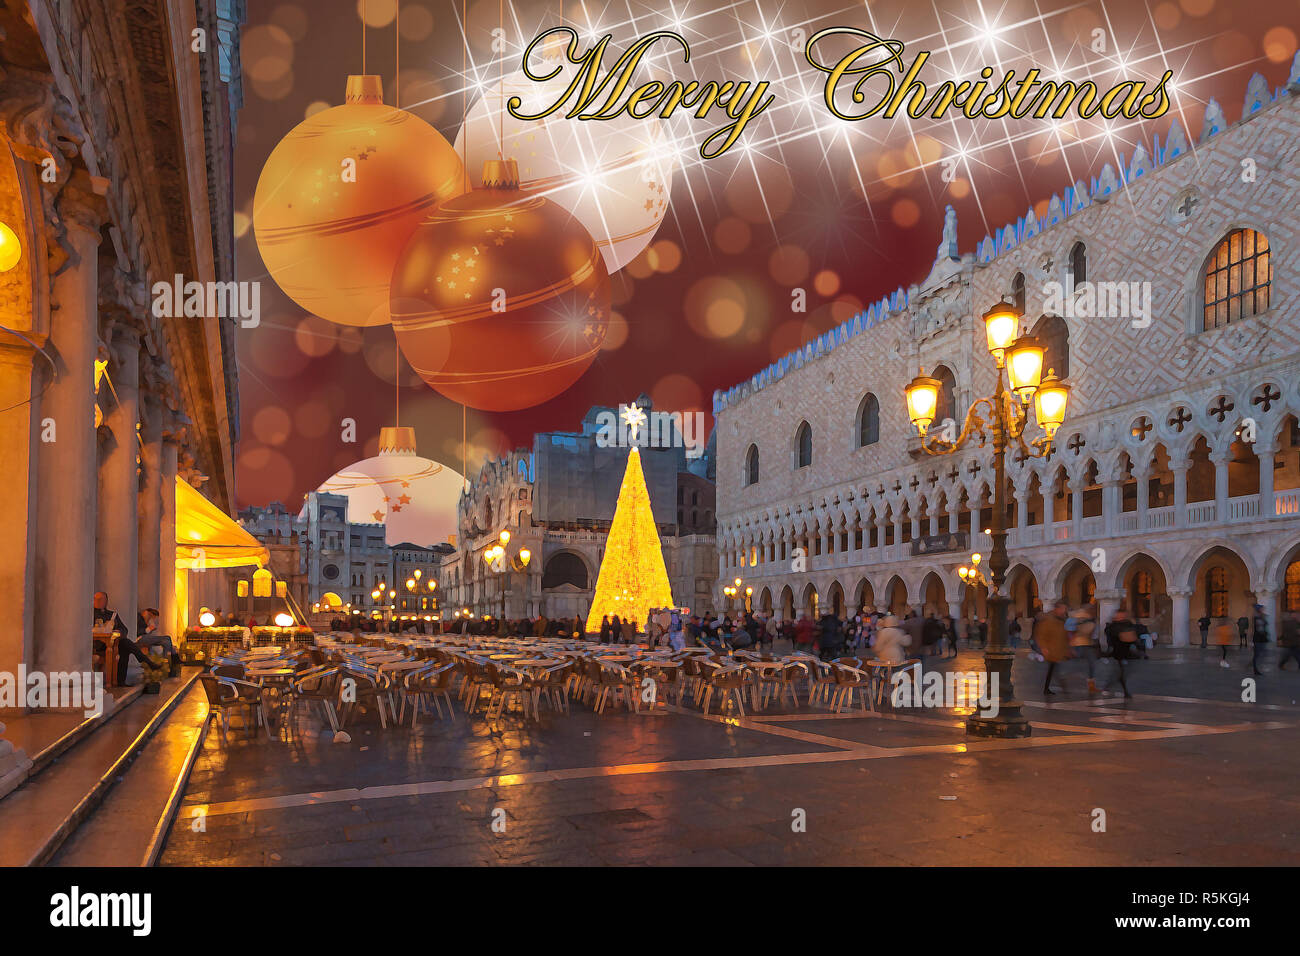 Christmas greetings card with Venice San Marco Square abstract background and fantasy sky - Stock Image